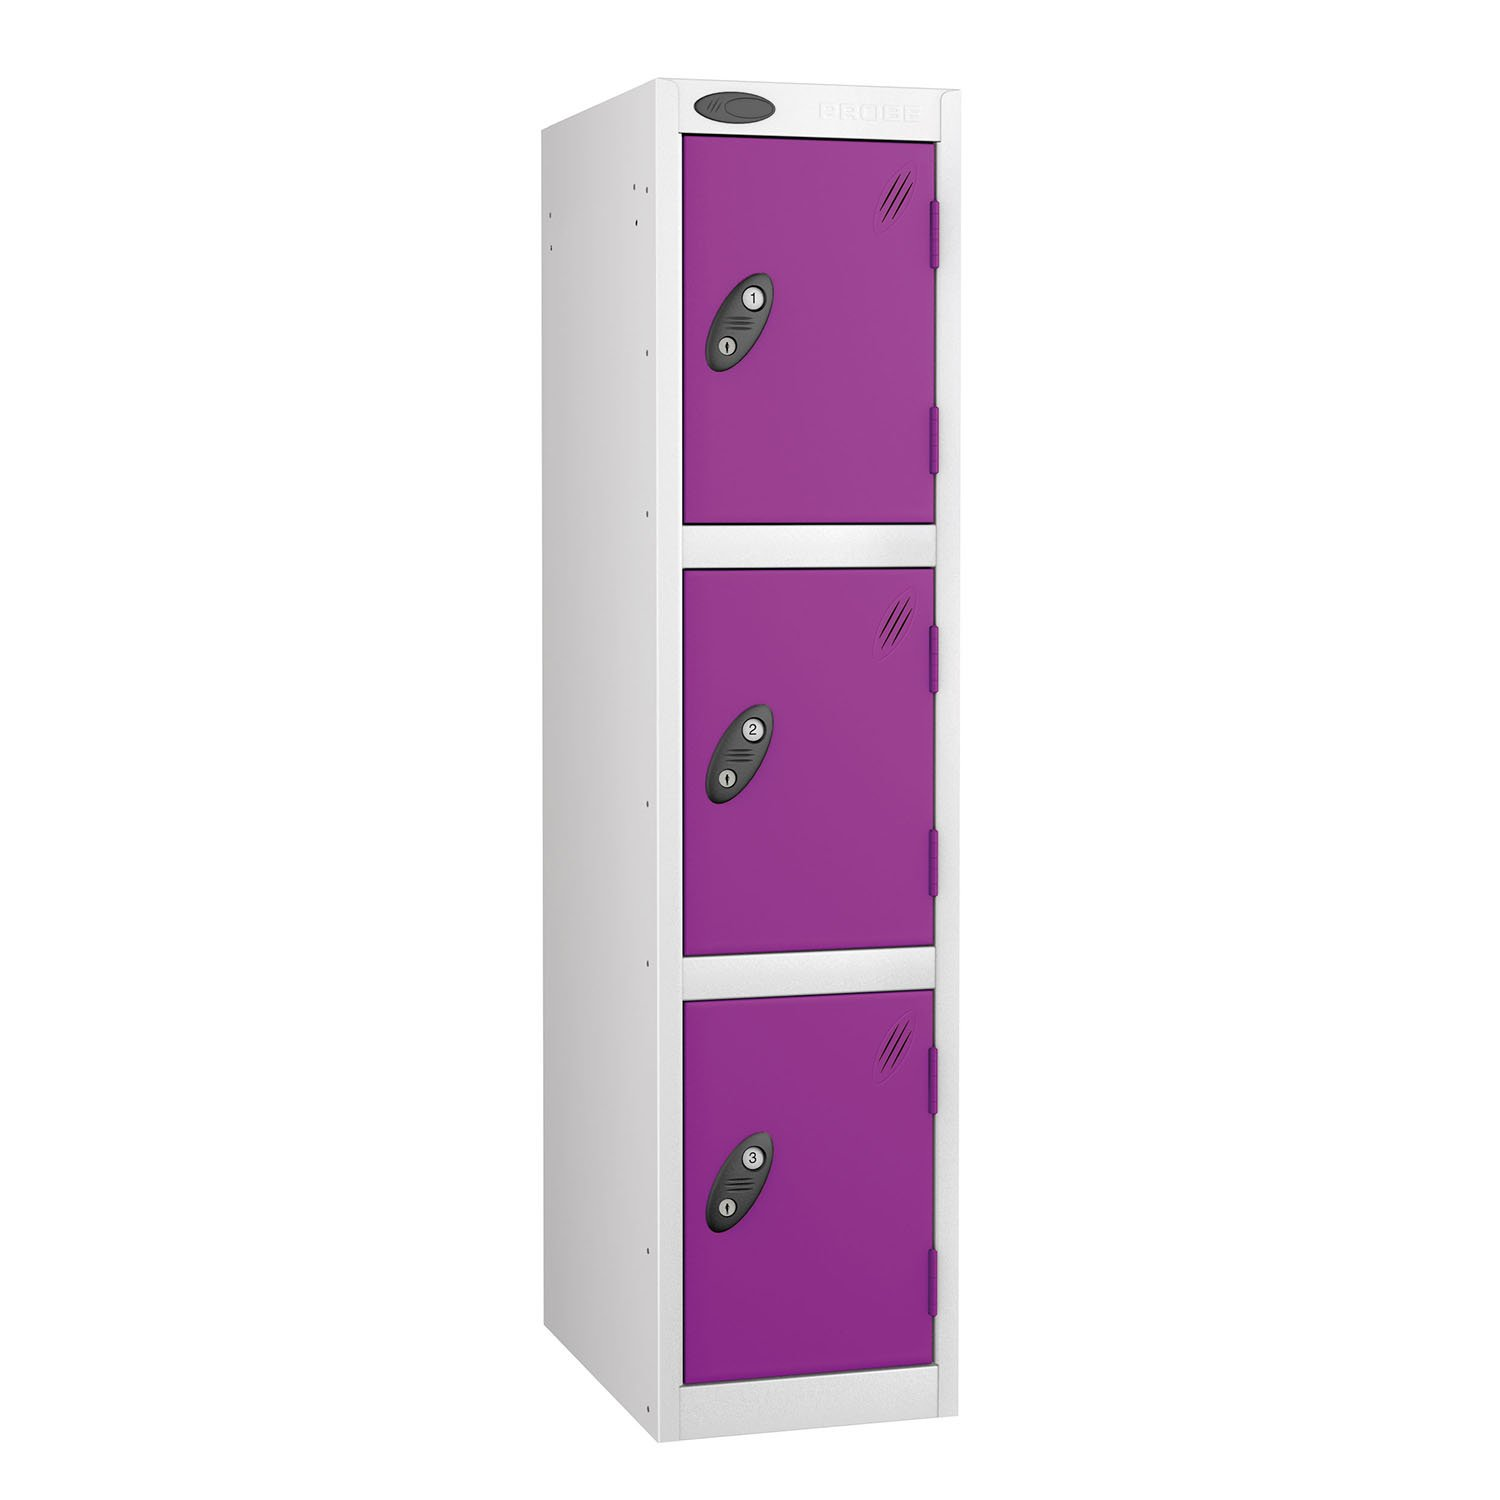 Probe 3 doors junior low locker in white-lilac colour